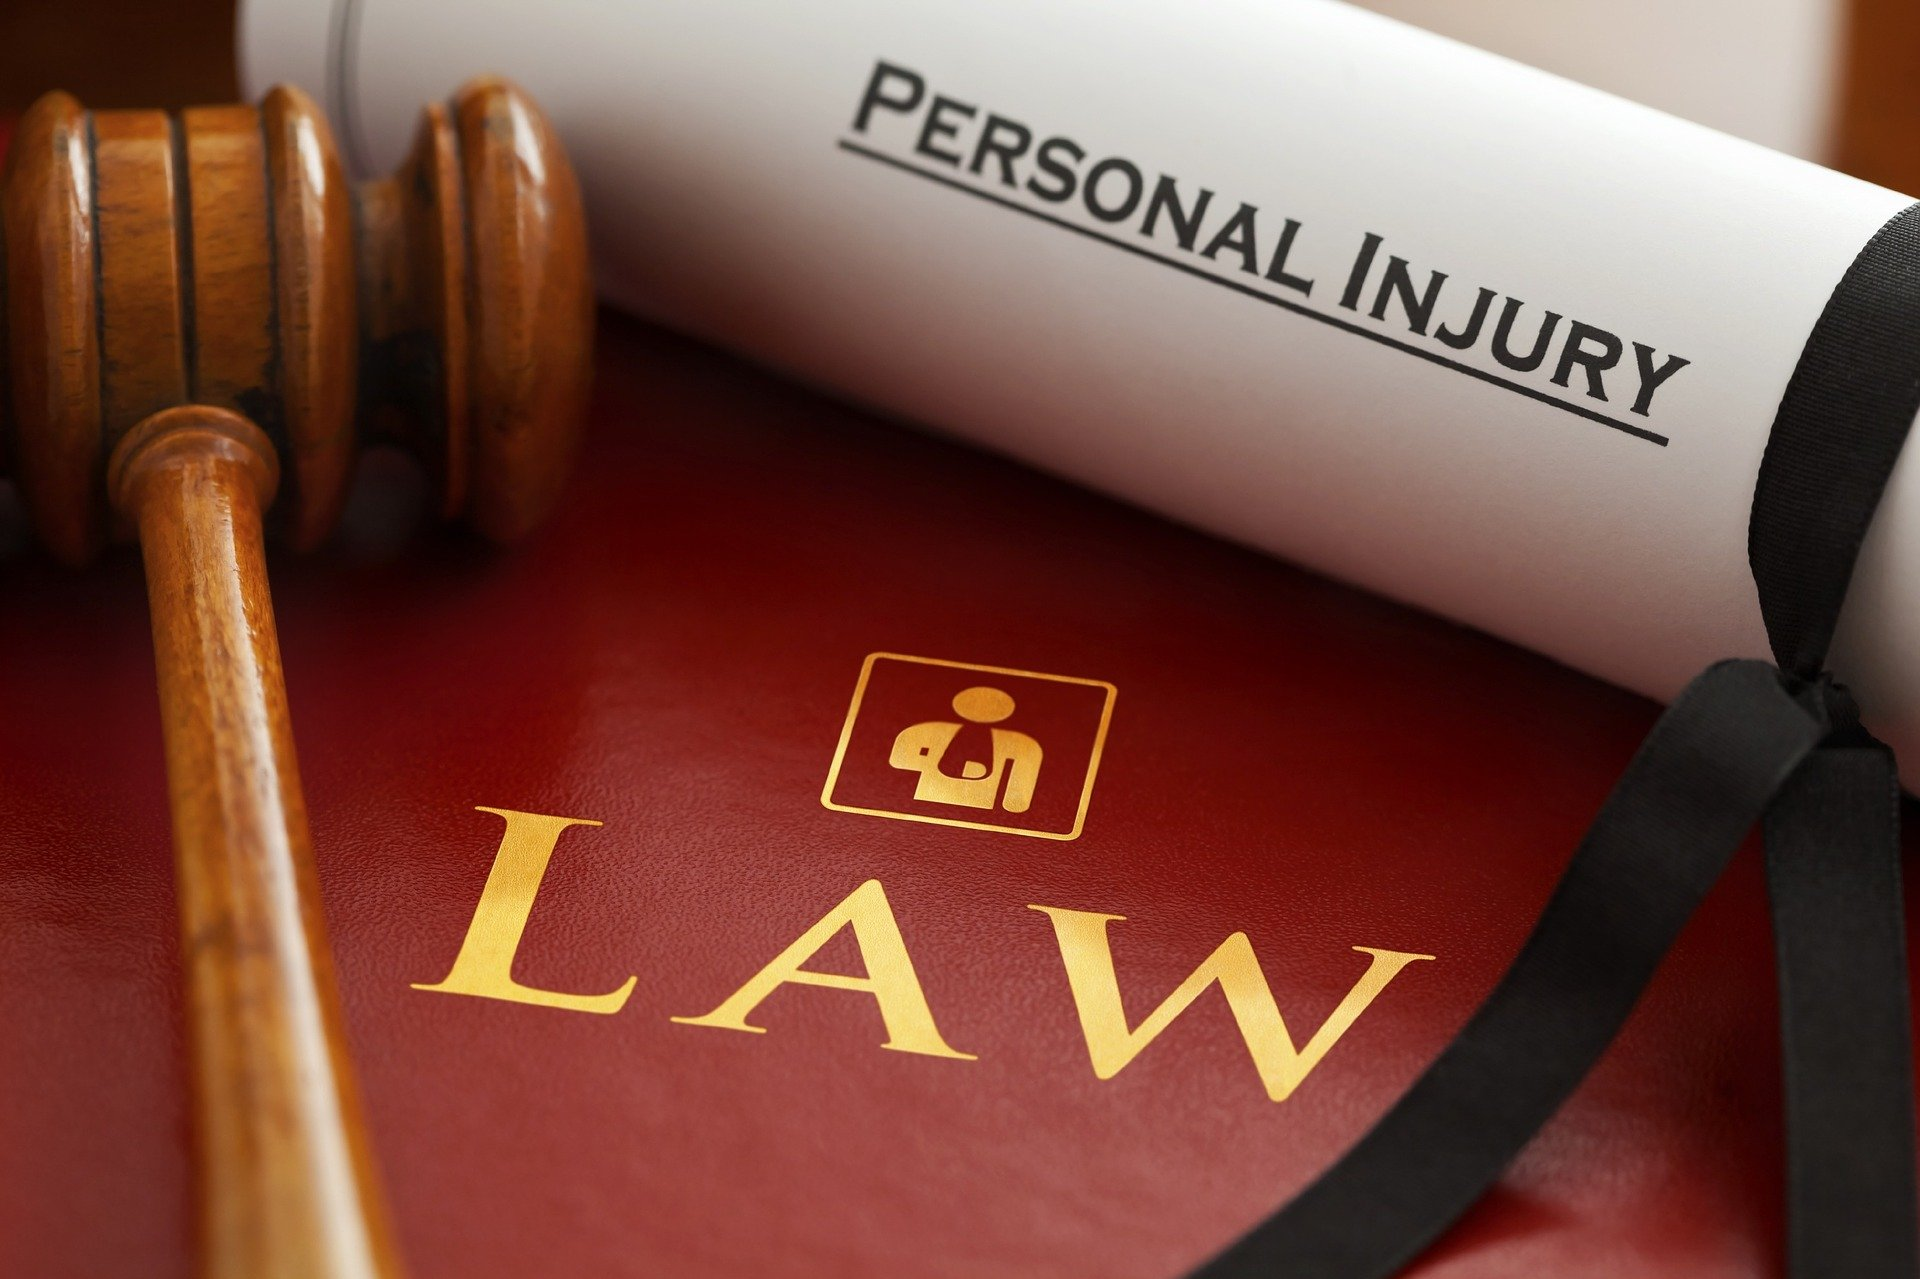 What Factors Will Impact My Personal Injury Claim Payout?